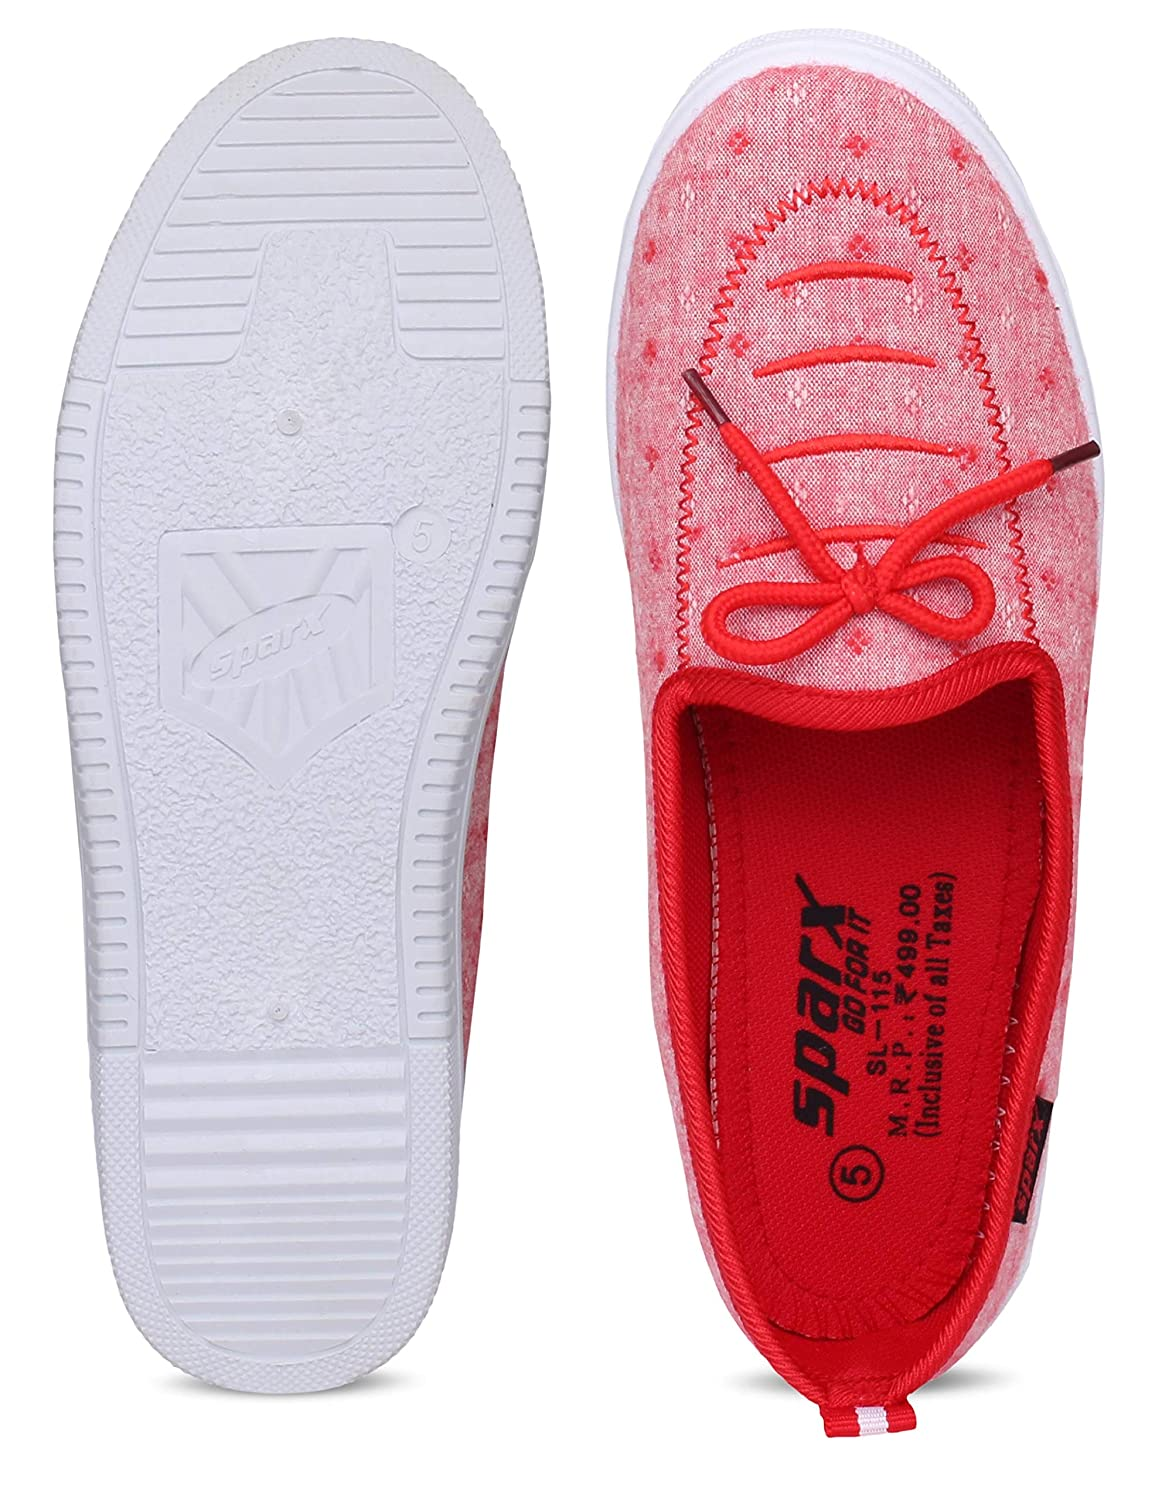 4179 essay about cell phones in school.php]essay Chef Anti slip Shoe Kitchen EVA Work Waterproof The new chef shoes